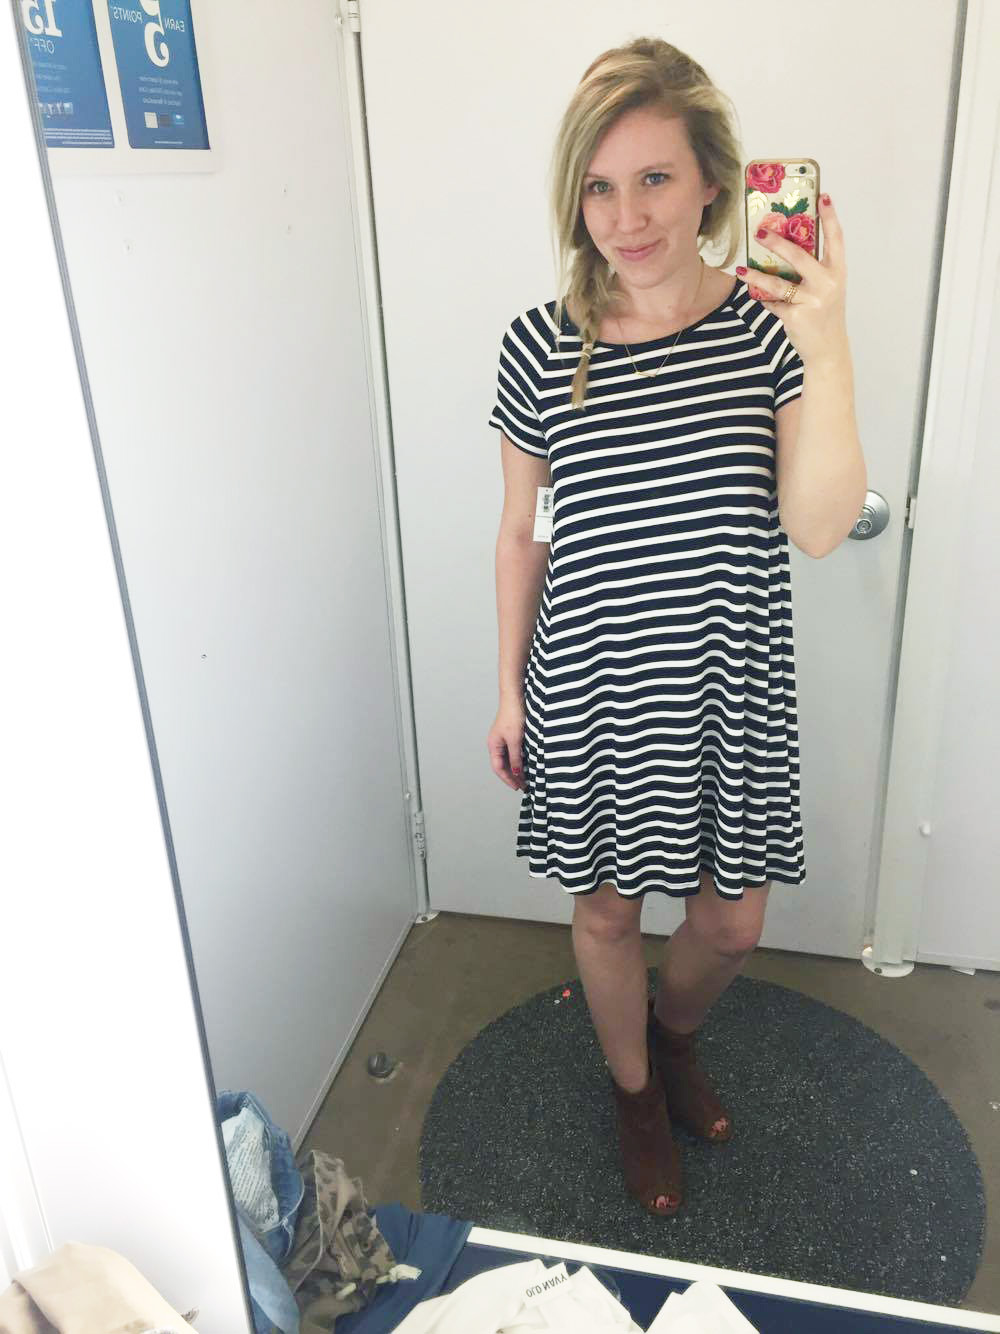 stripedtshirtdress.jpg